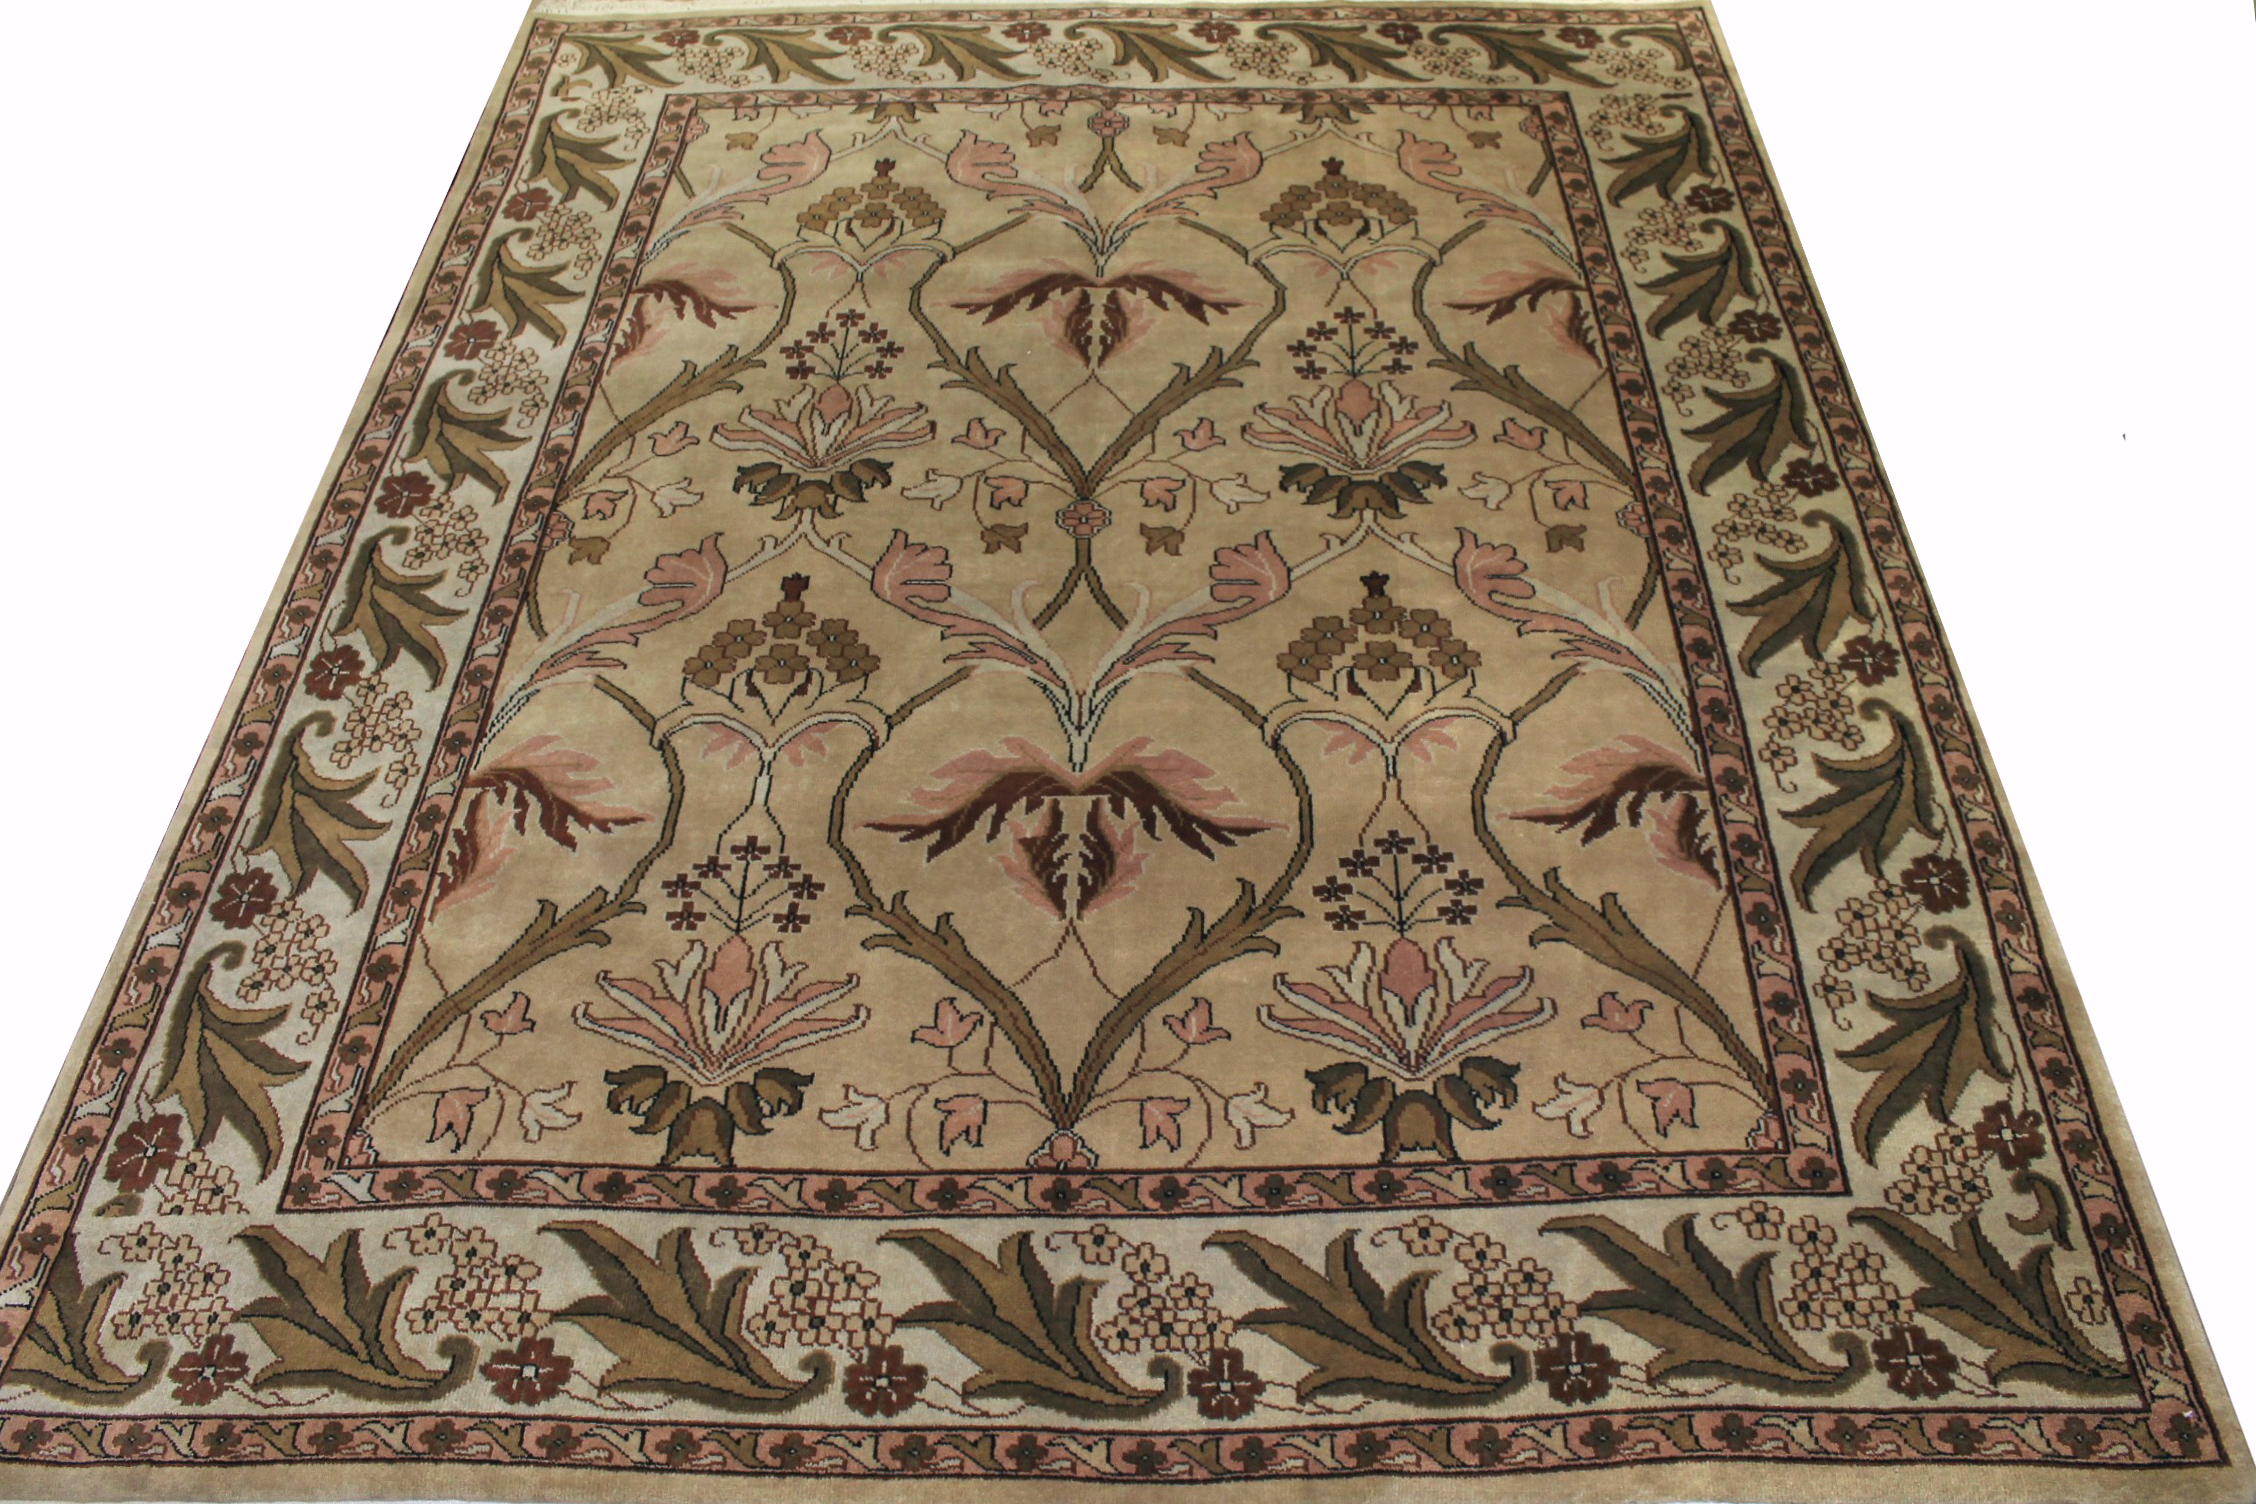 8x10 Traditional Hand Knotted Wool Area Rug - MR0013